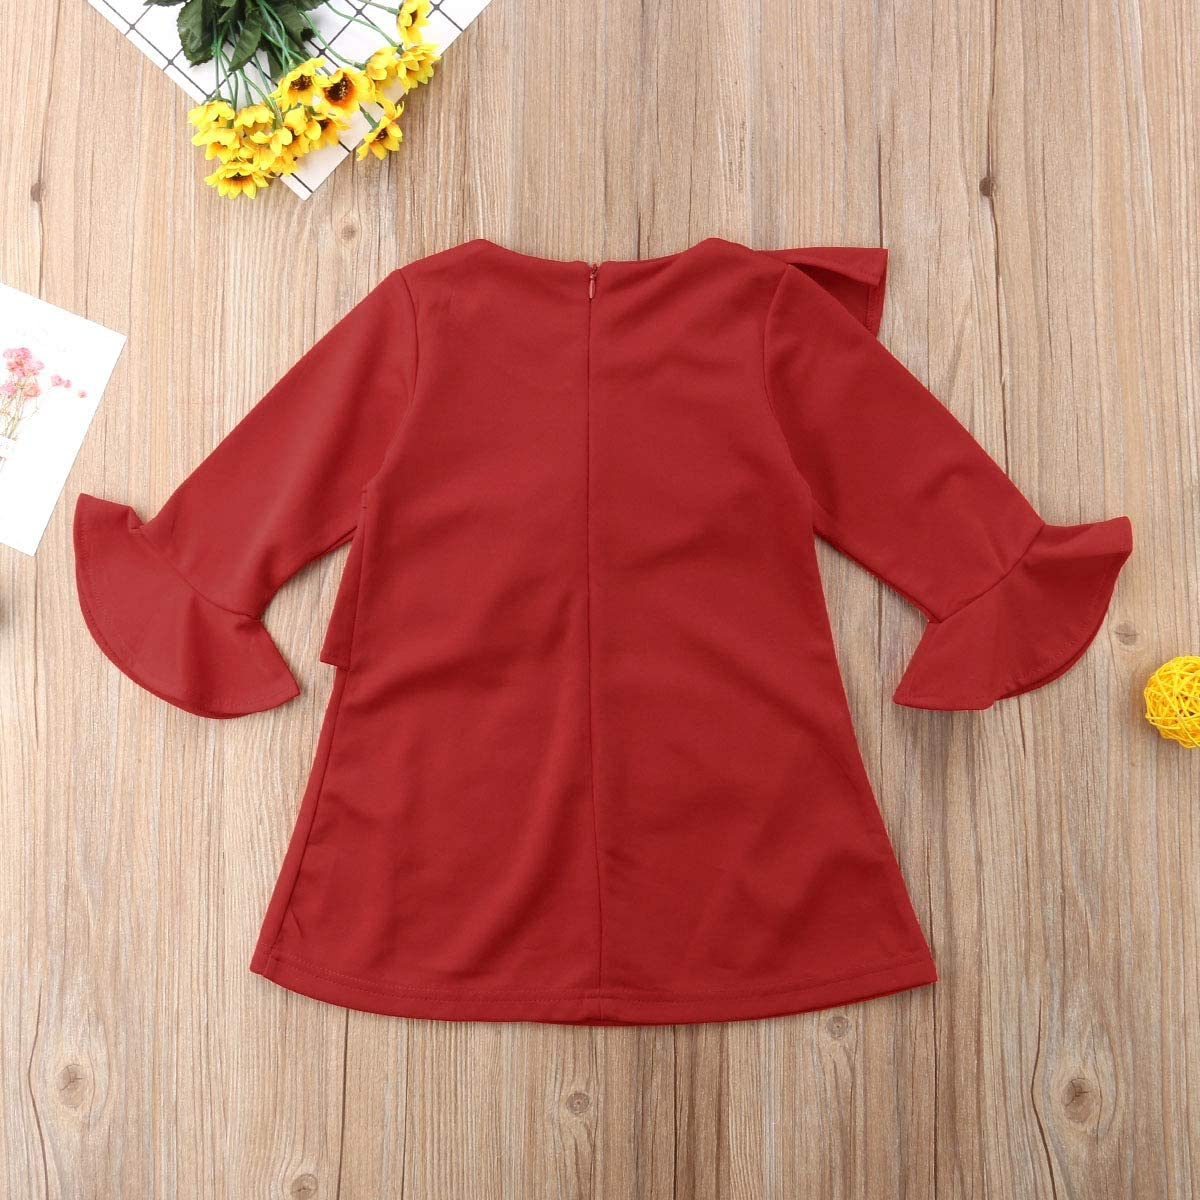 mettime US New Baby Infant Girls Flare Long Sleeve Incliend Ruffles Flower Bodycon Dress Bright Red Zipper Closure